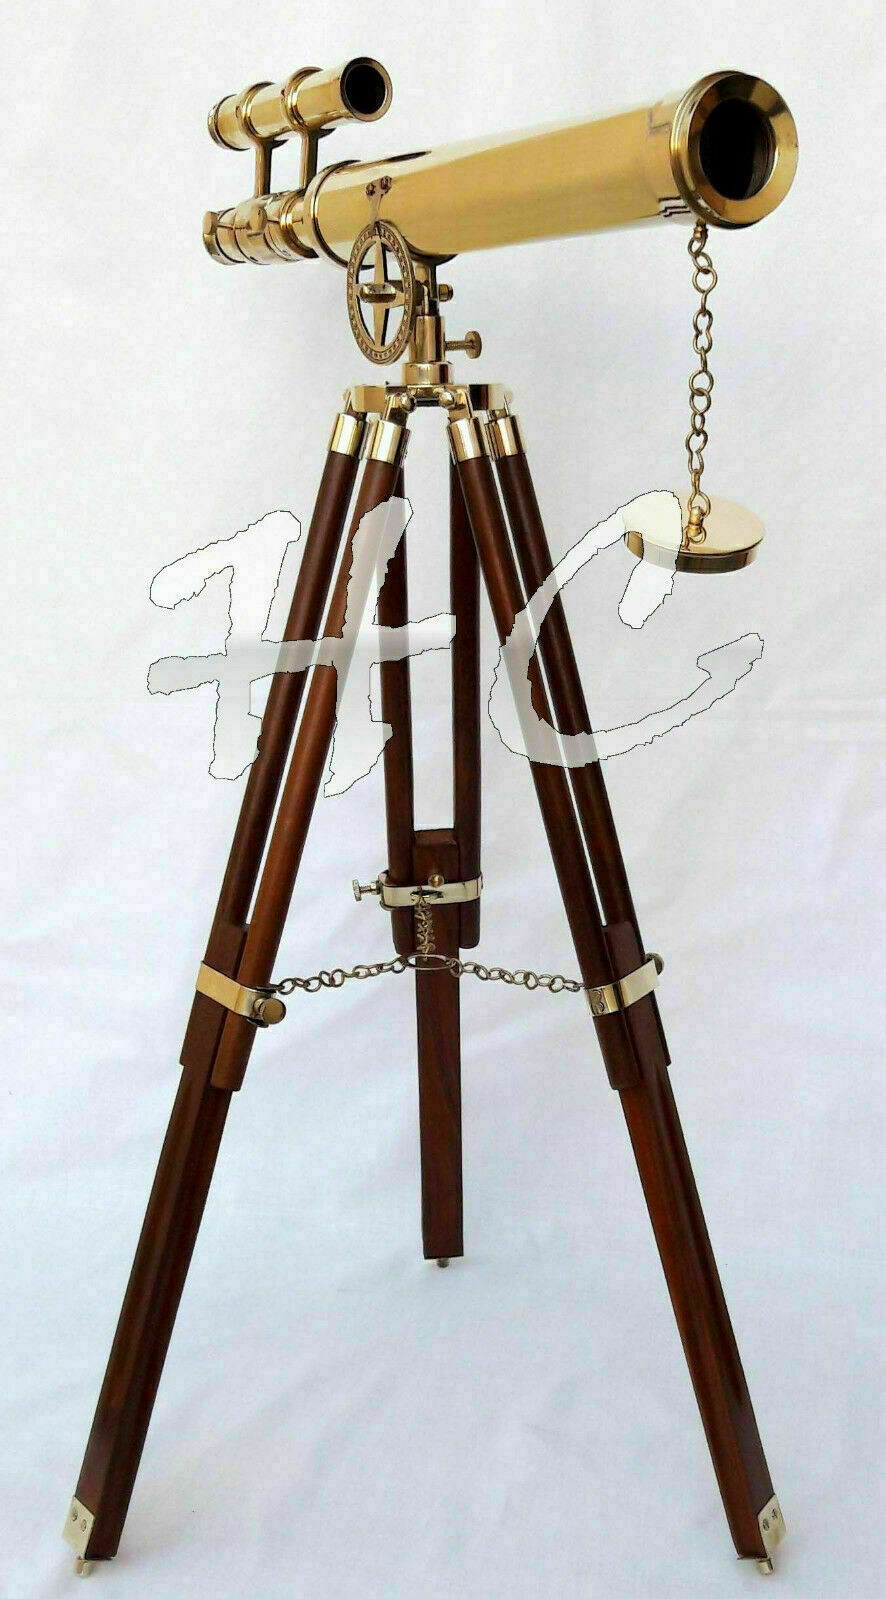 18 Brass Marine Nautical Double Barrel Telescope Navy With Wooden Tripod Stand - $81.00